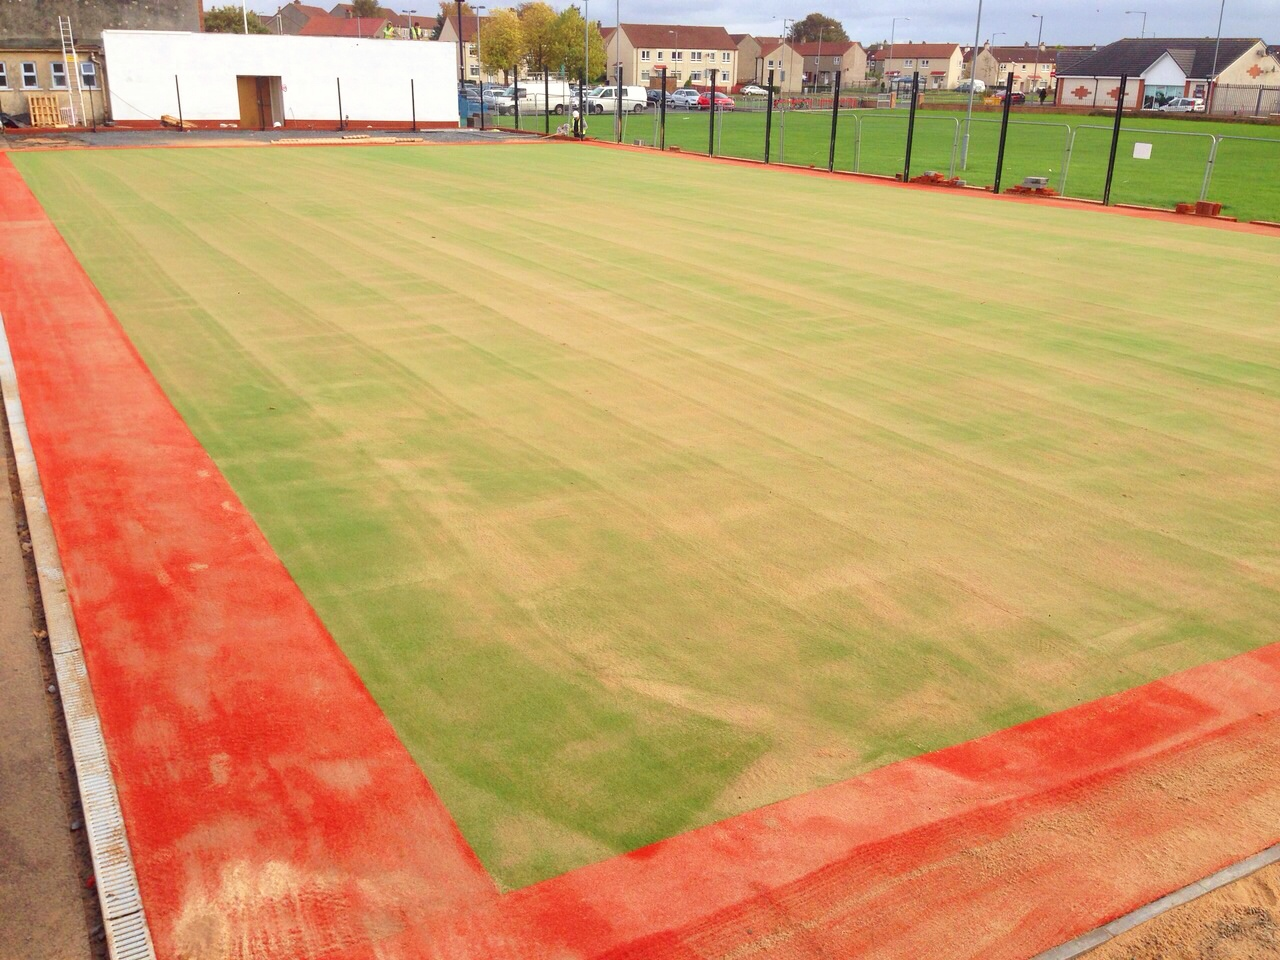 Multisport Synthetic Turf V Polymeric Rubber